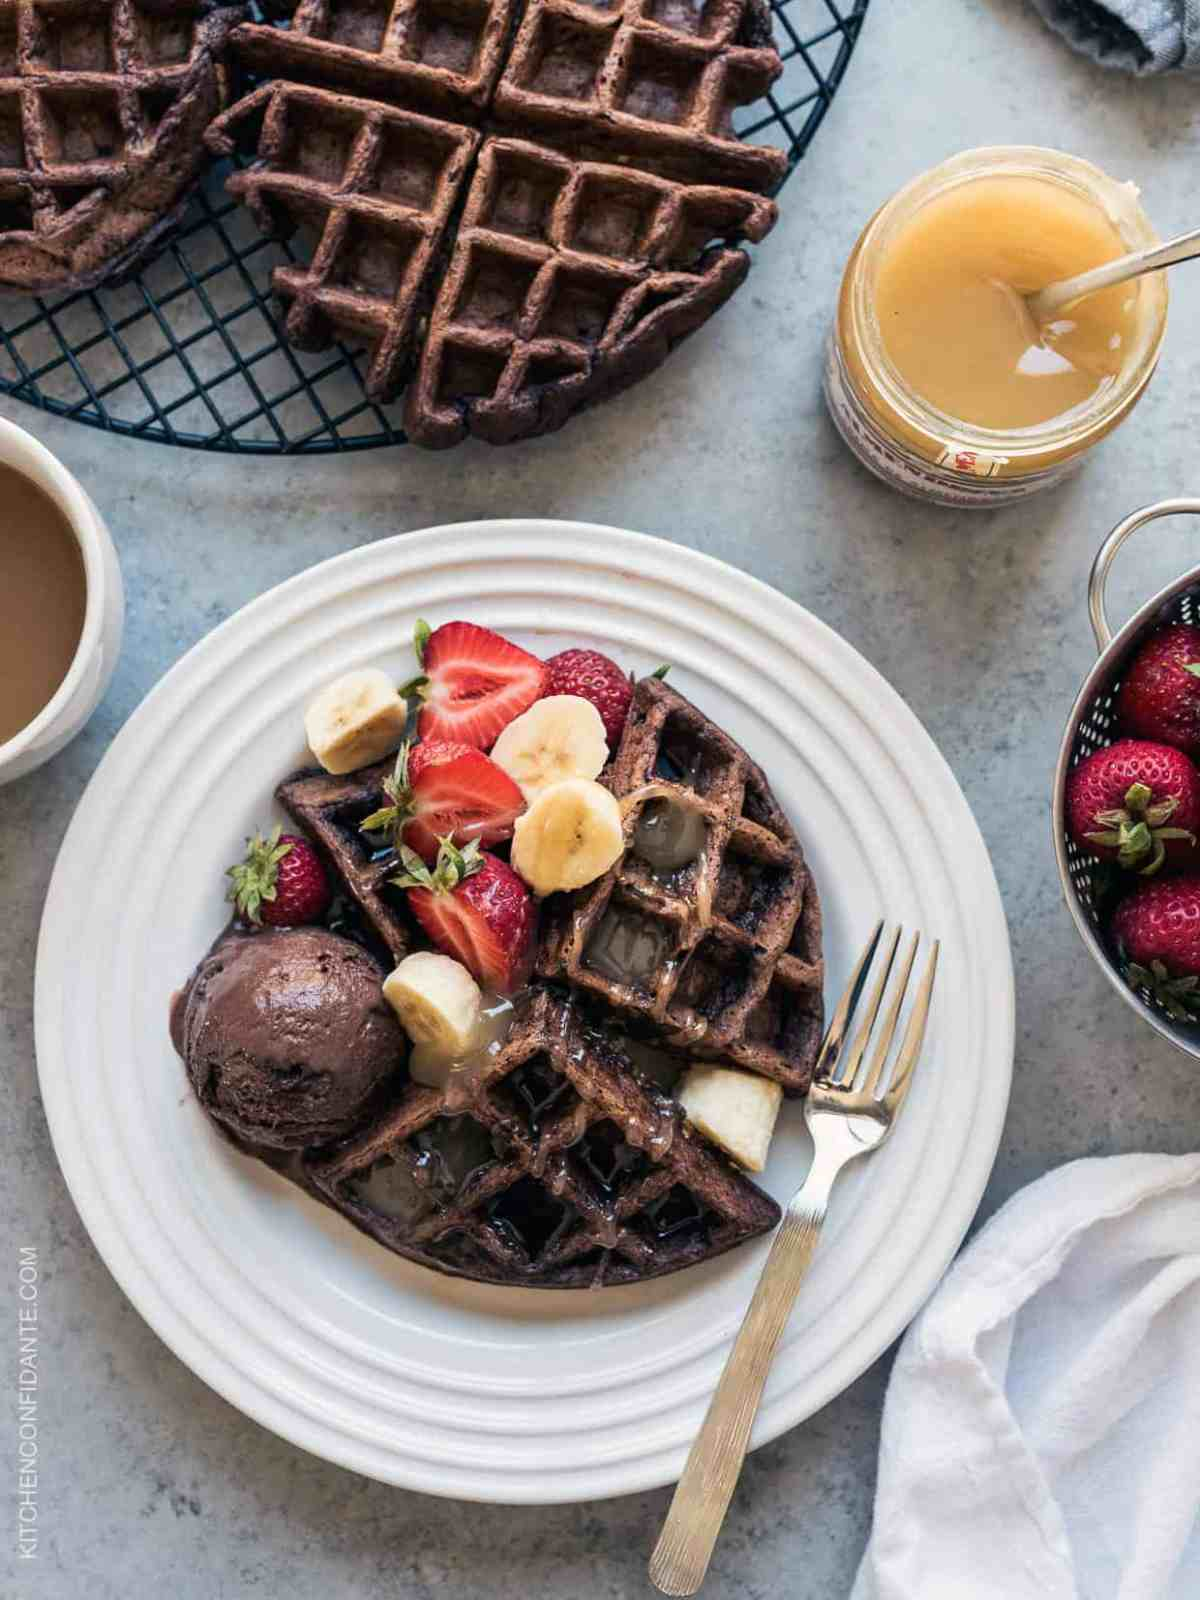 Chocolate Zucchini Belgian Waffles - hidden in the nooks and crannies are good-for-you zucchini! Use up summer zucchini in a chocolatey breakfast (or decadent dessert!)